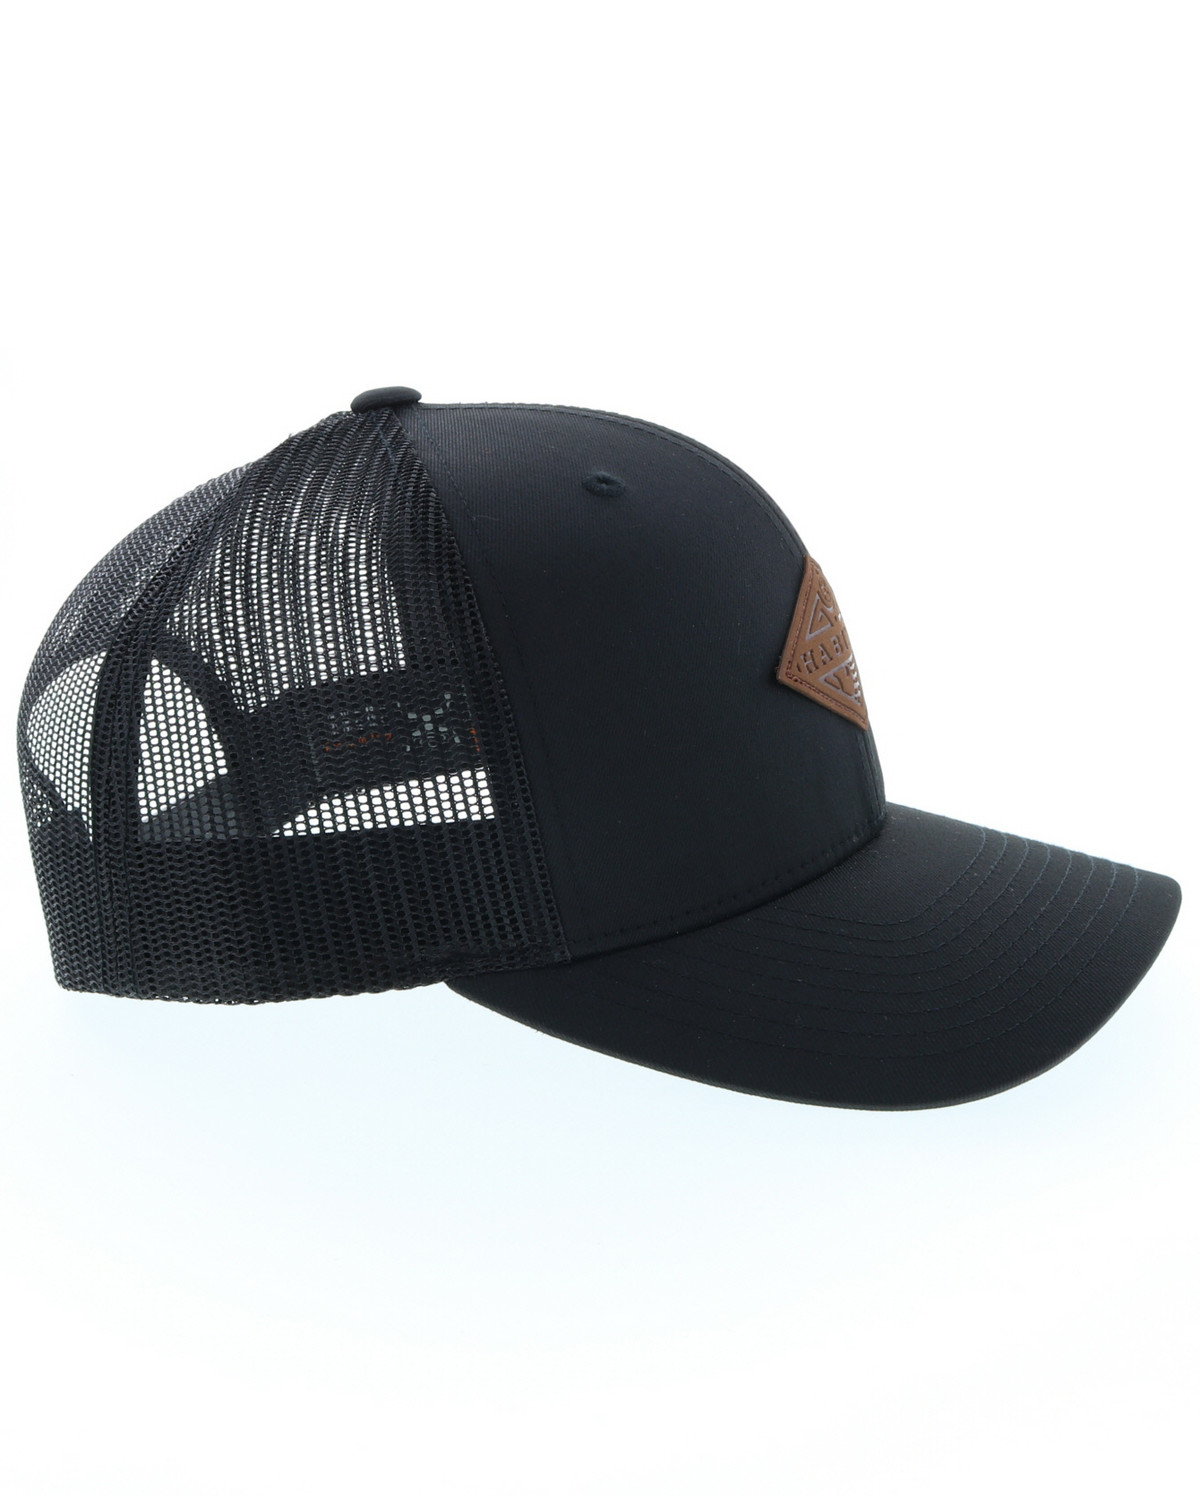 4a799936d56 HOOey Men s Graphite Habitat Leather Patch Ball Cap